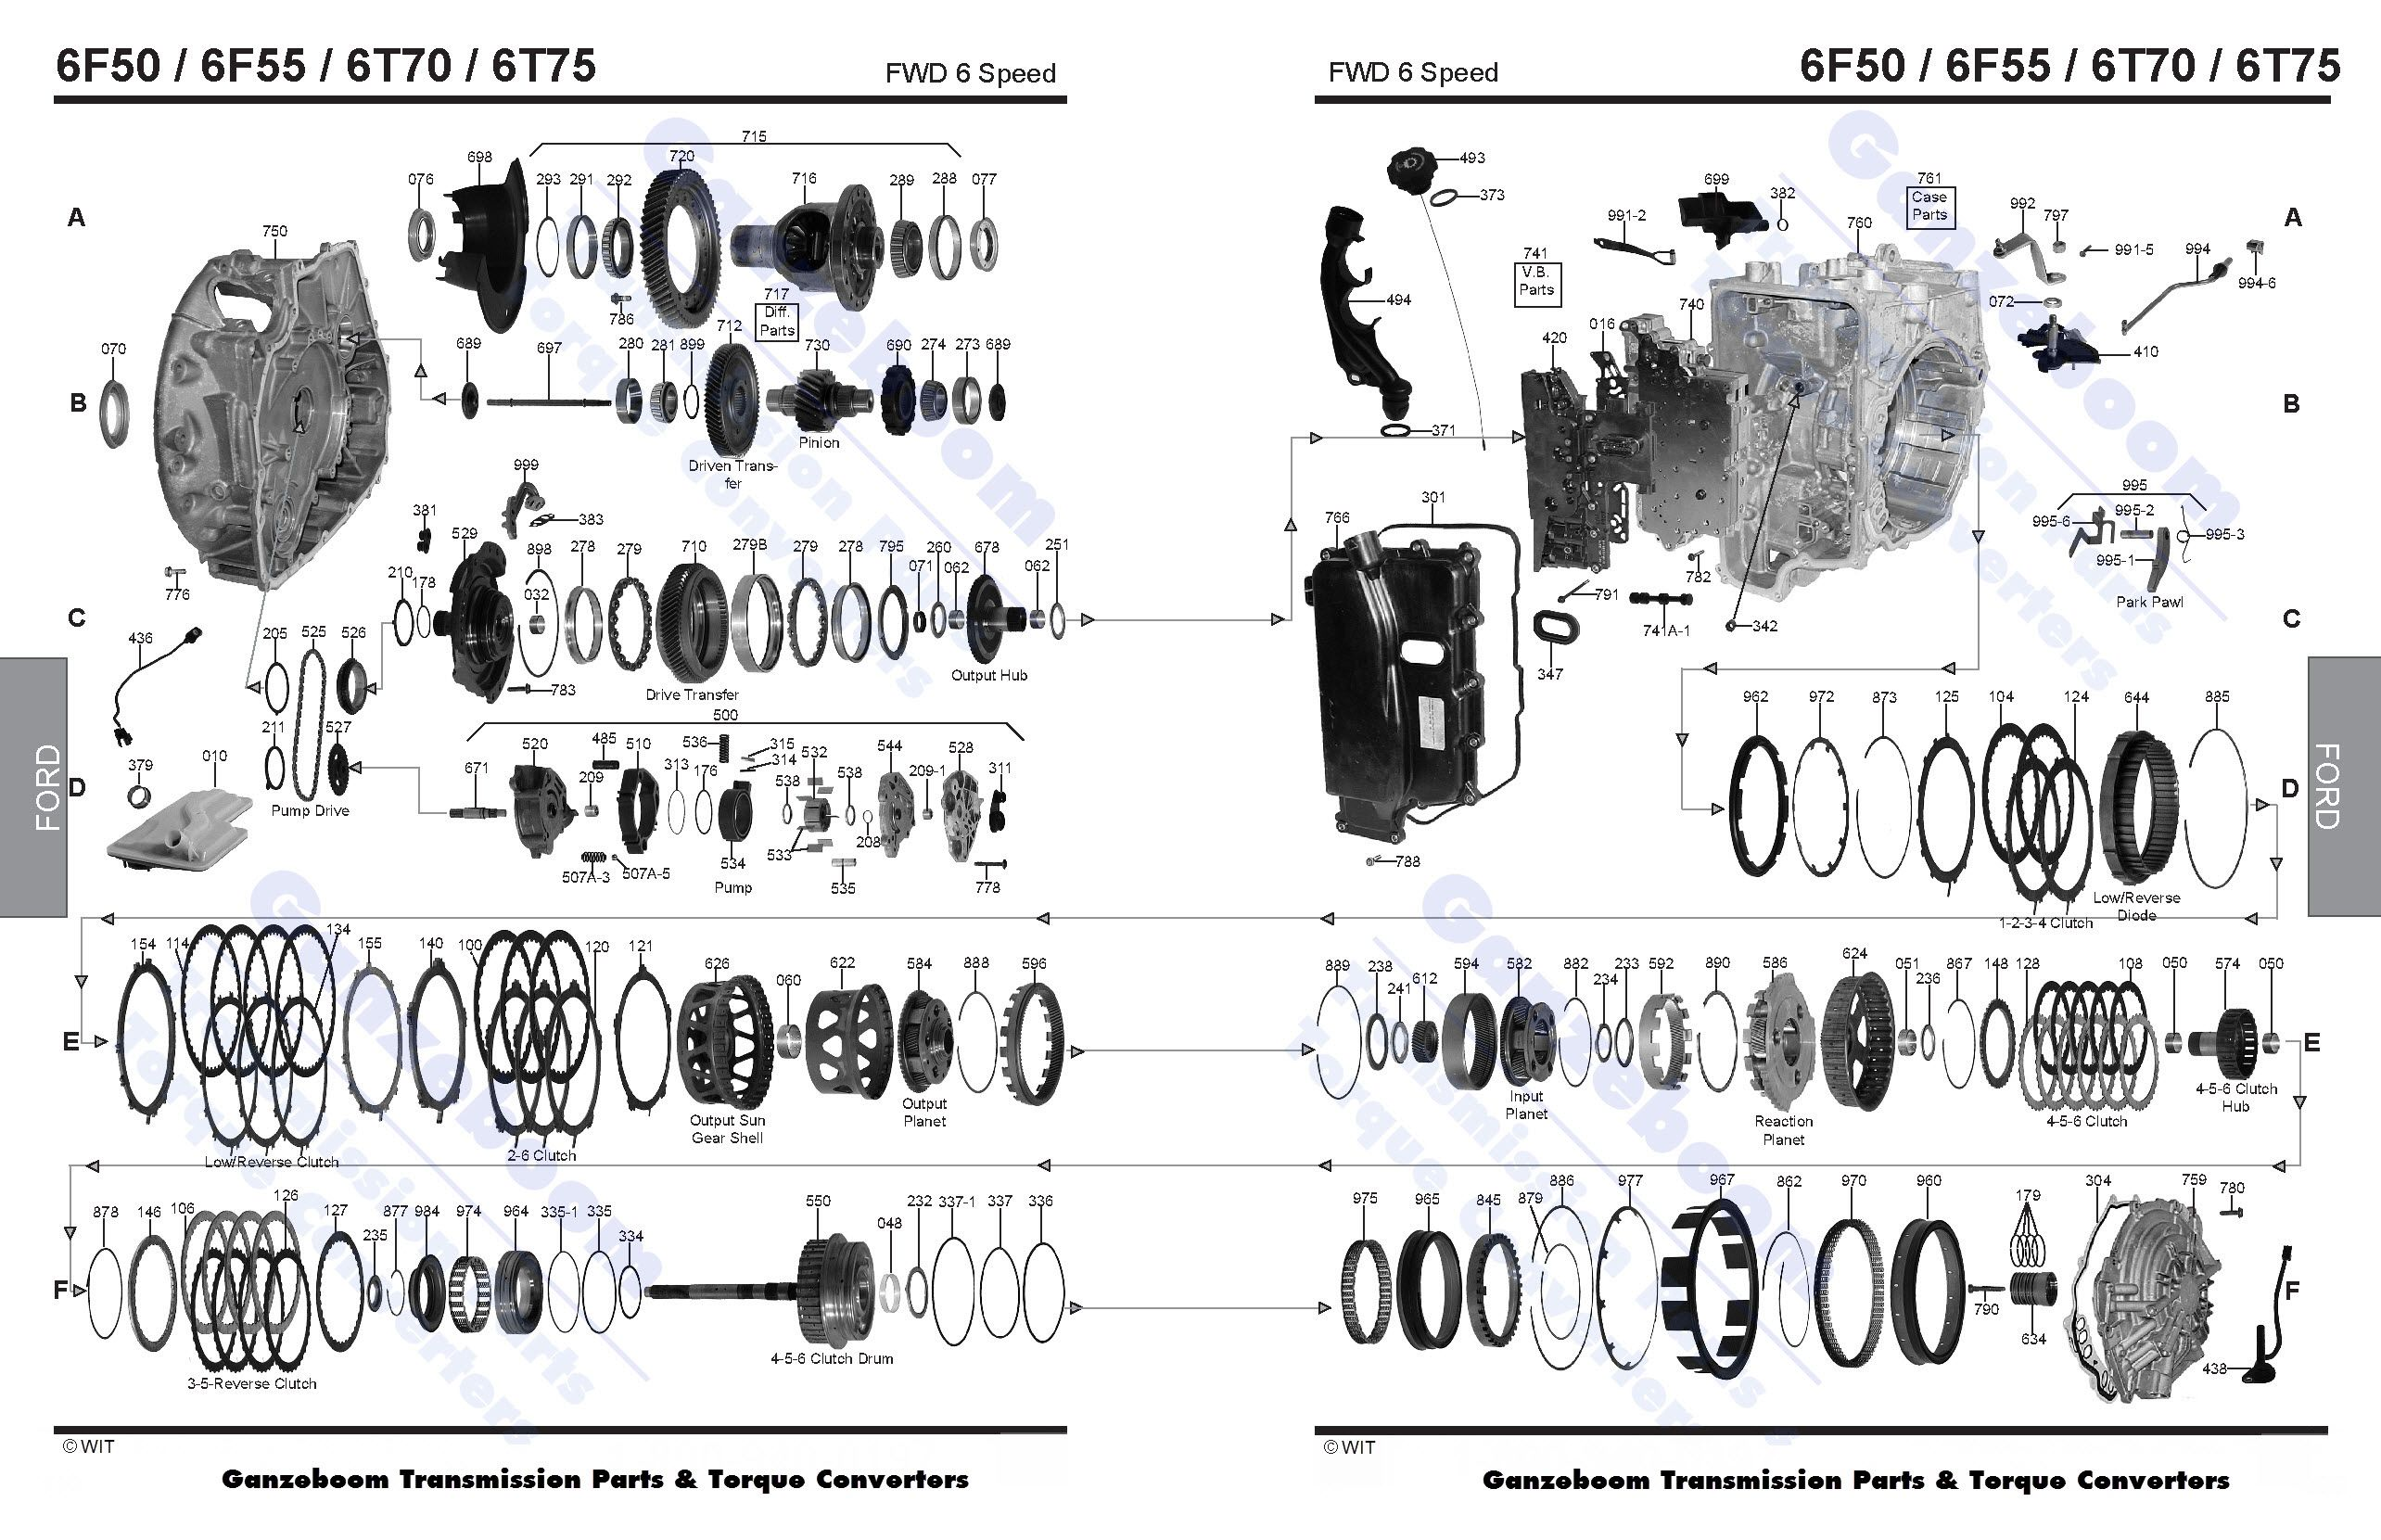 6t70 transmission exploded view likewise 2012 saturn outlook 6t70 transmission exploded view likewise 2012 saturn outlook likewise 6t70 transmission diagram further automatic transmission rebuild